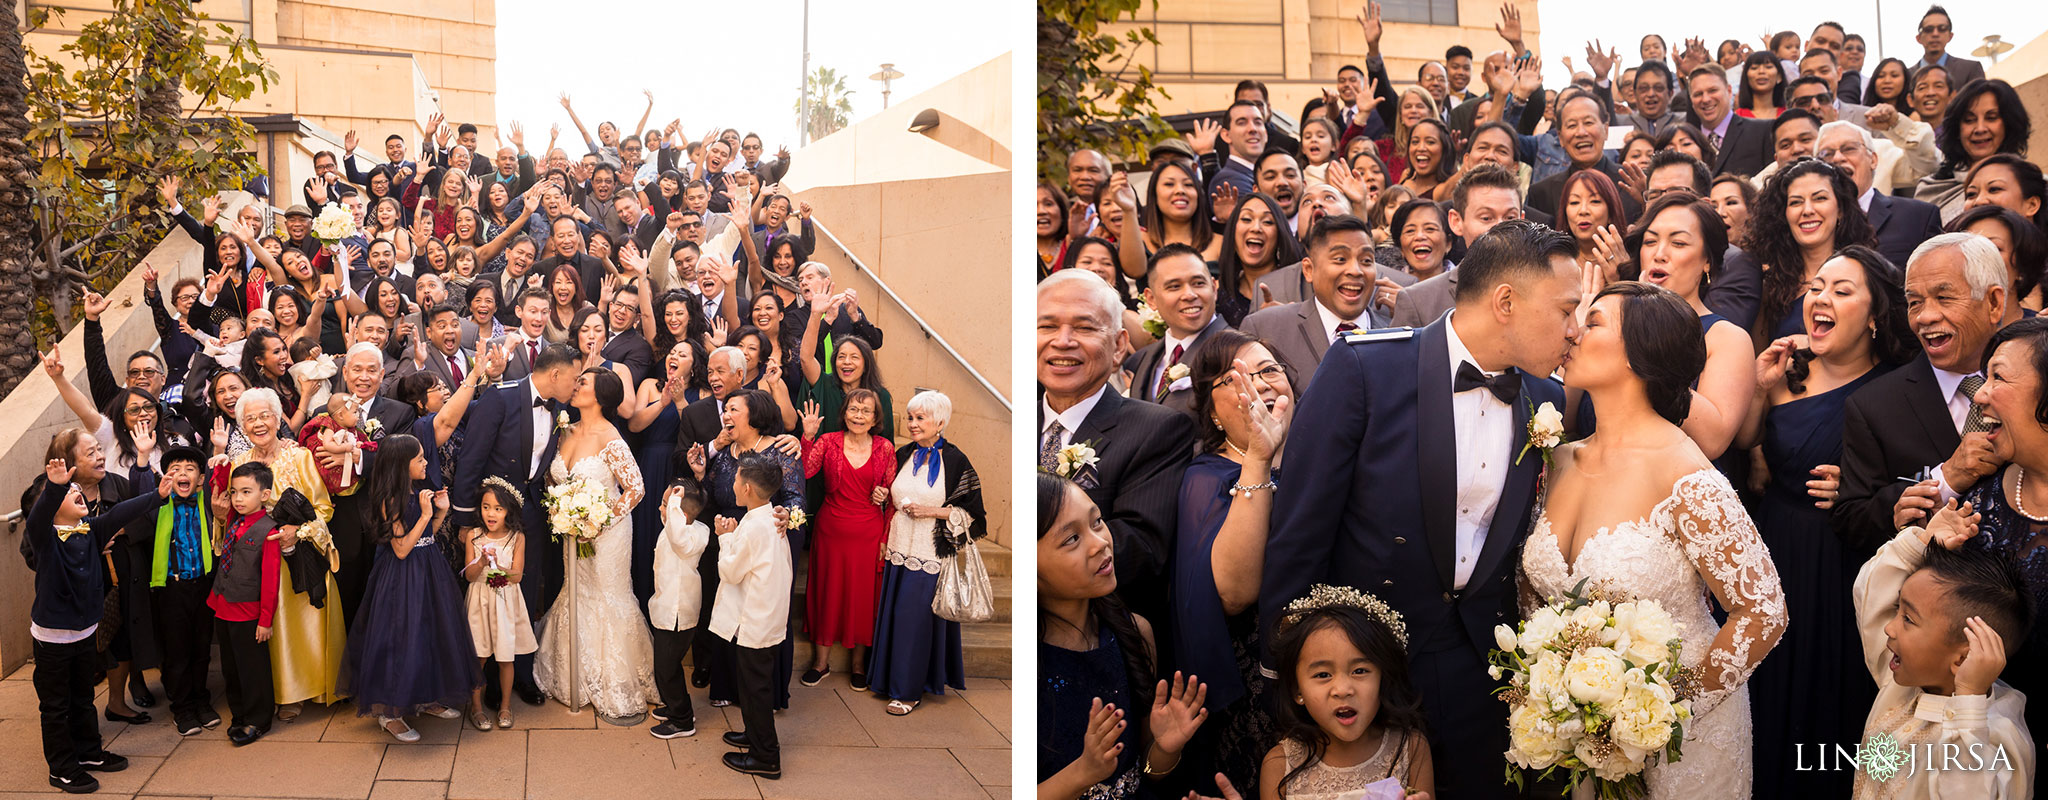 26 cathedral of our lady of angels wedding ceremony photography